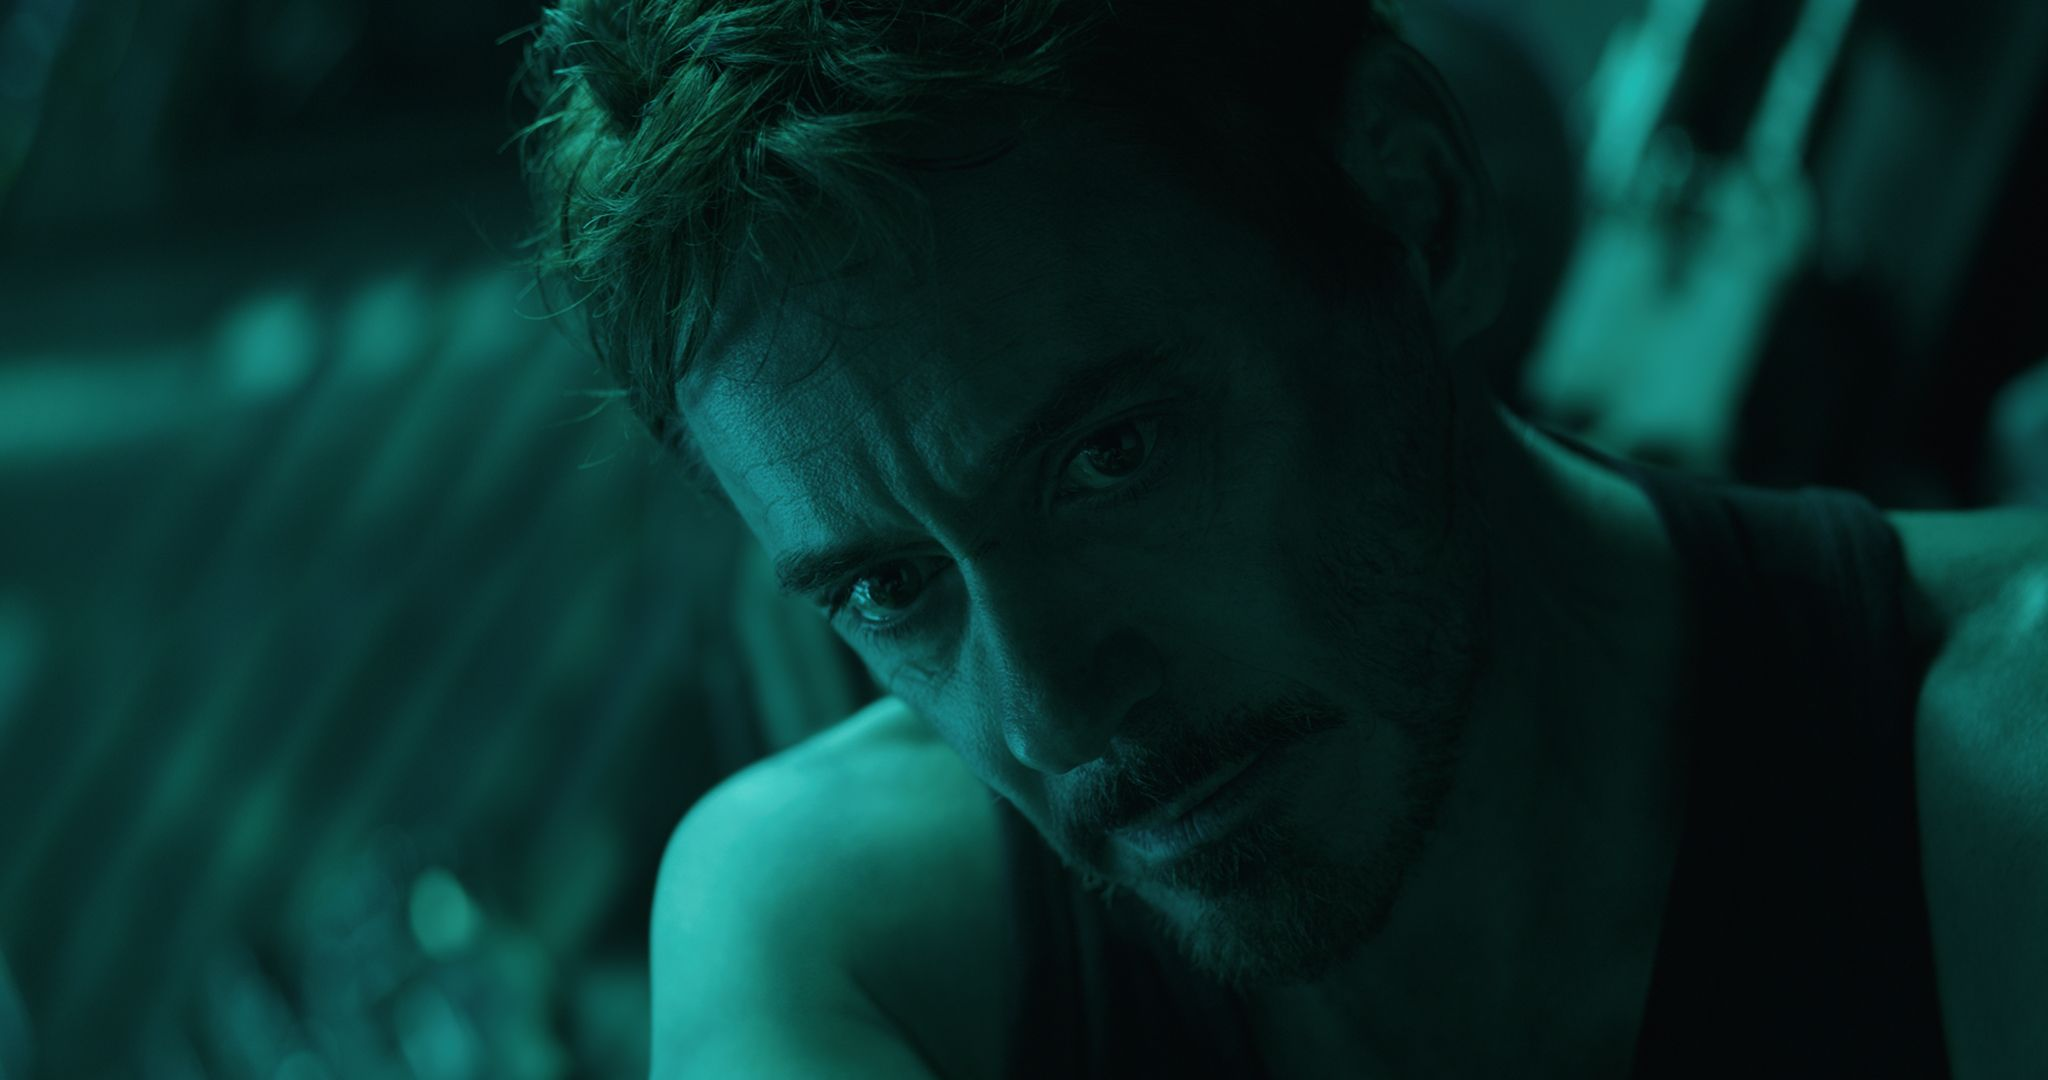 Does Iron Man Die in 'Avengers: Endgame'? Why Tony Stark Should